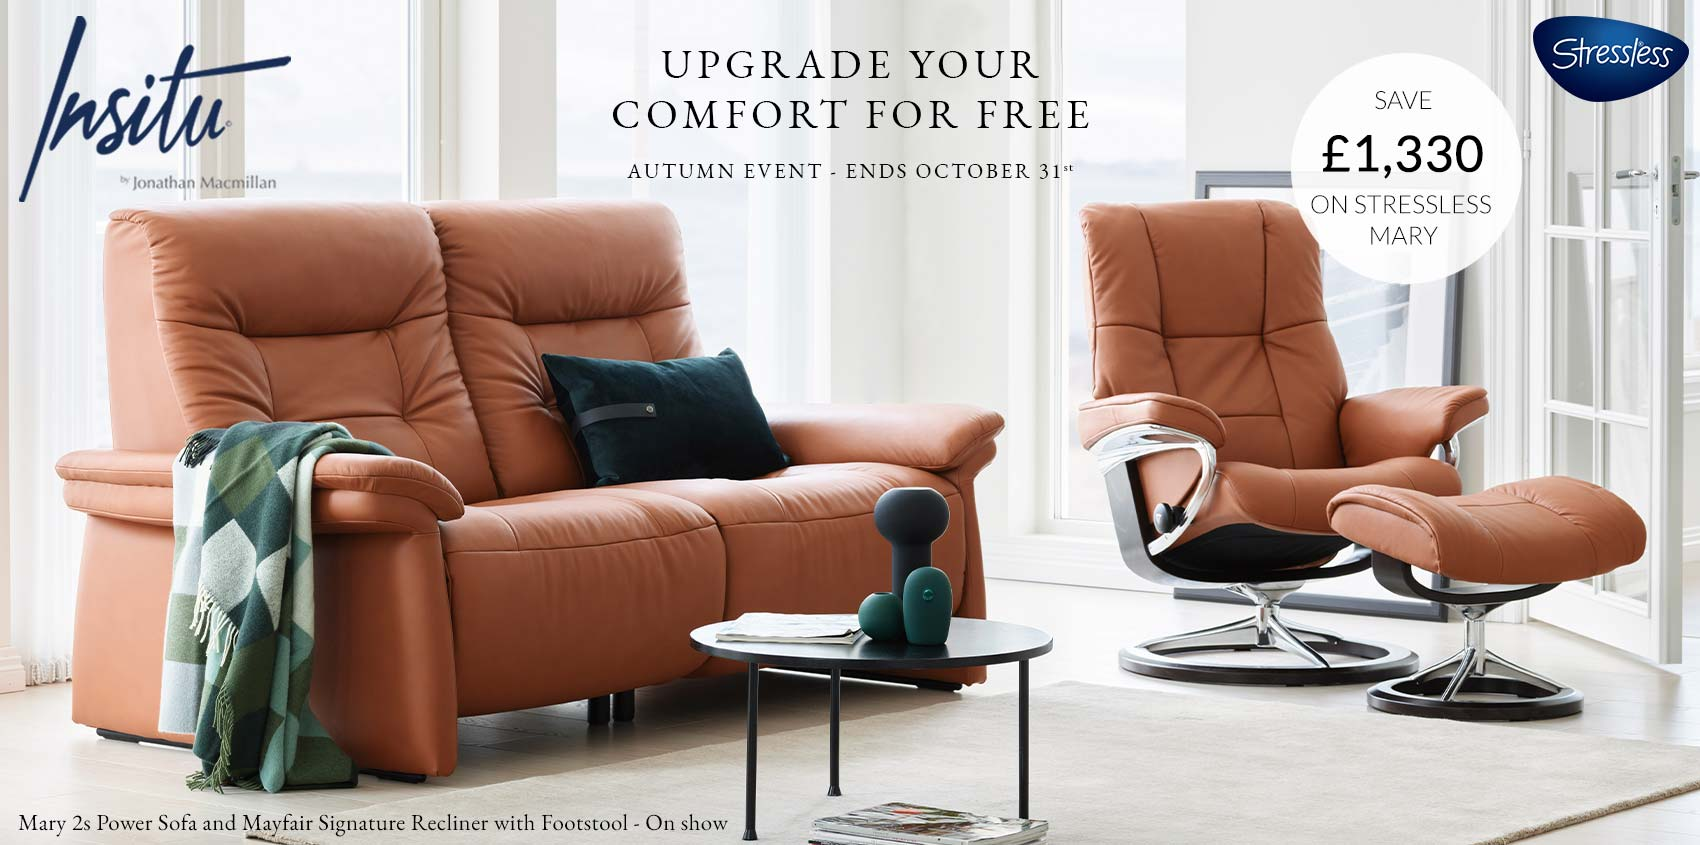 Stressless upgrade offer